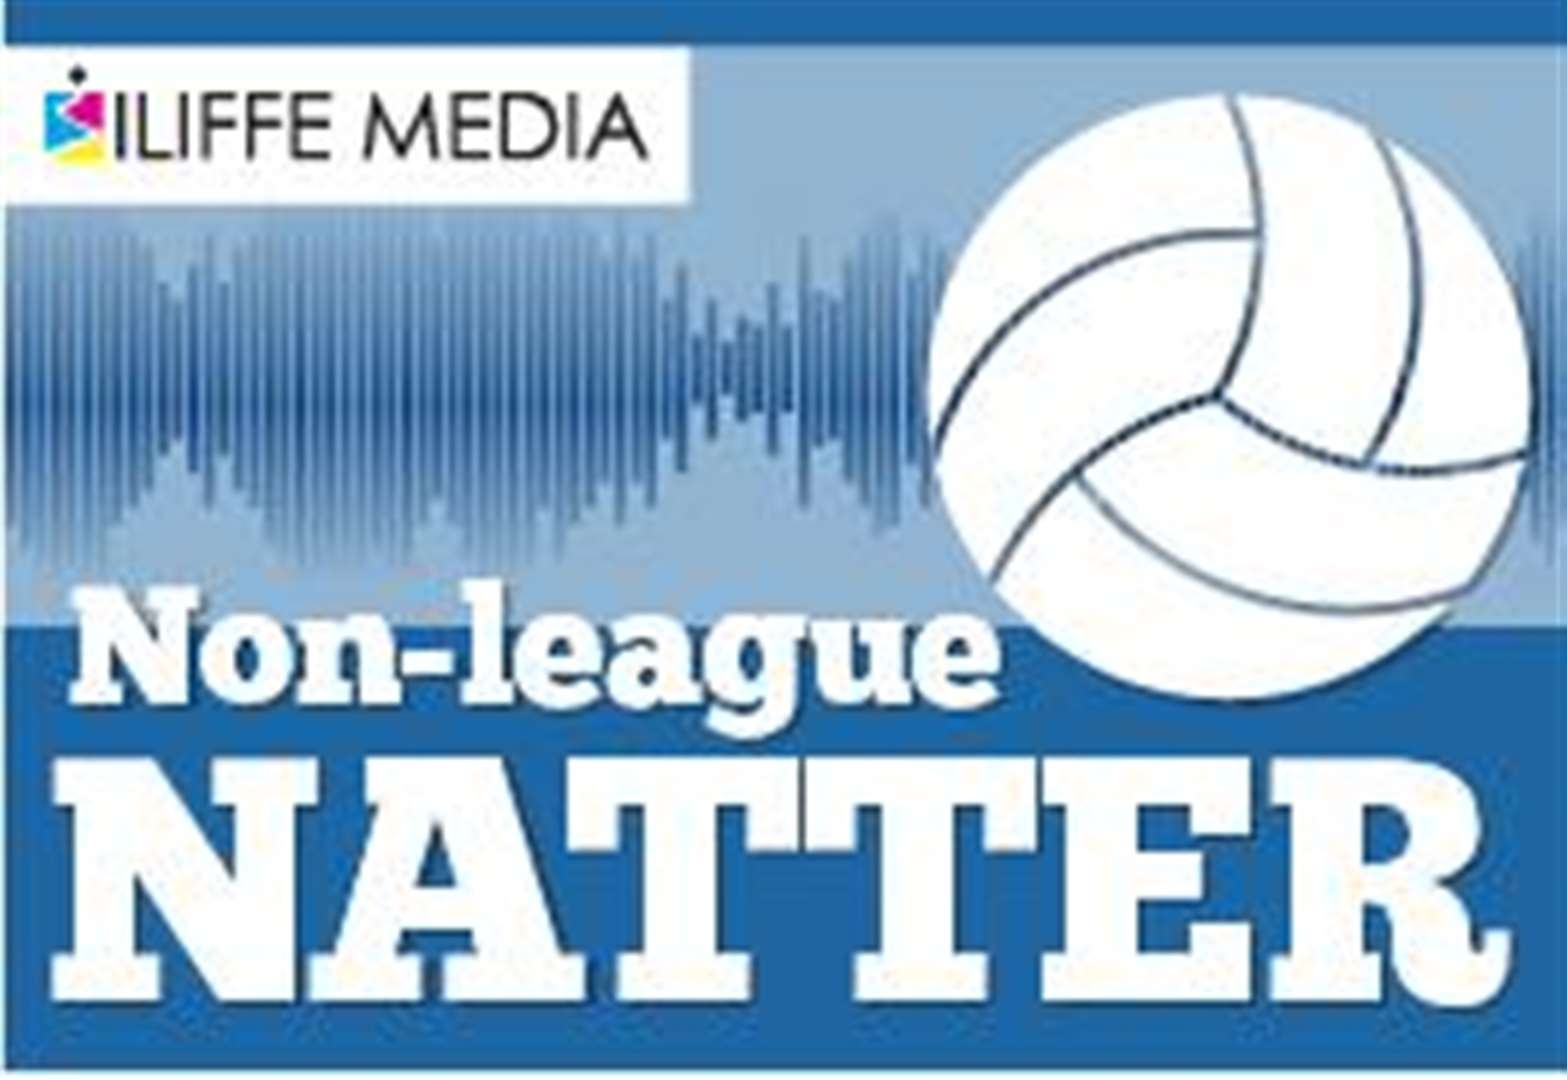 Non-League Natter Podcast: Ep6